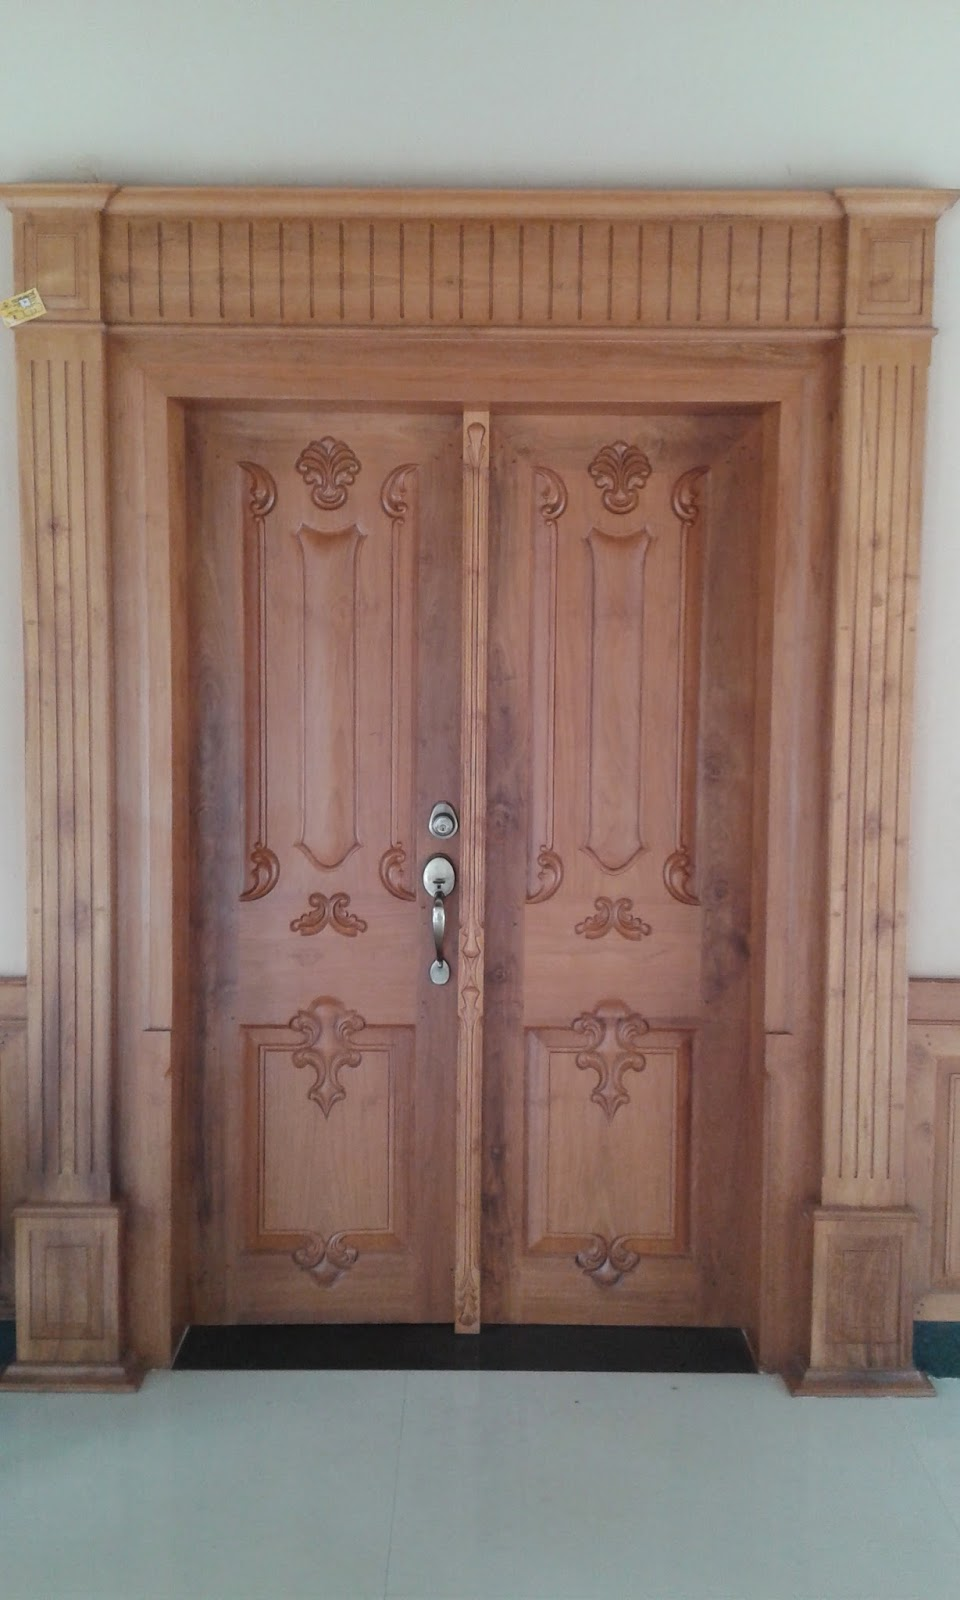 Kerala style carpenter works and designs for Entrance door design ideas